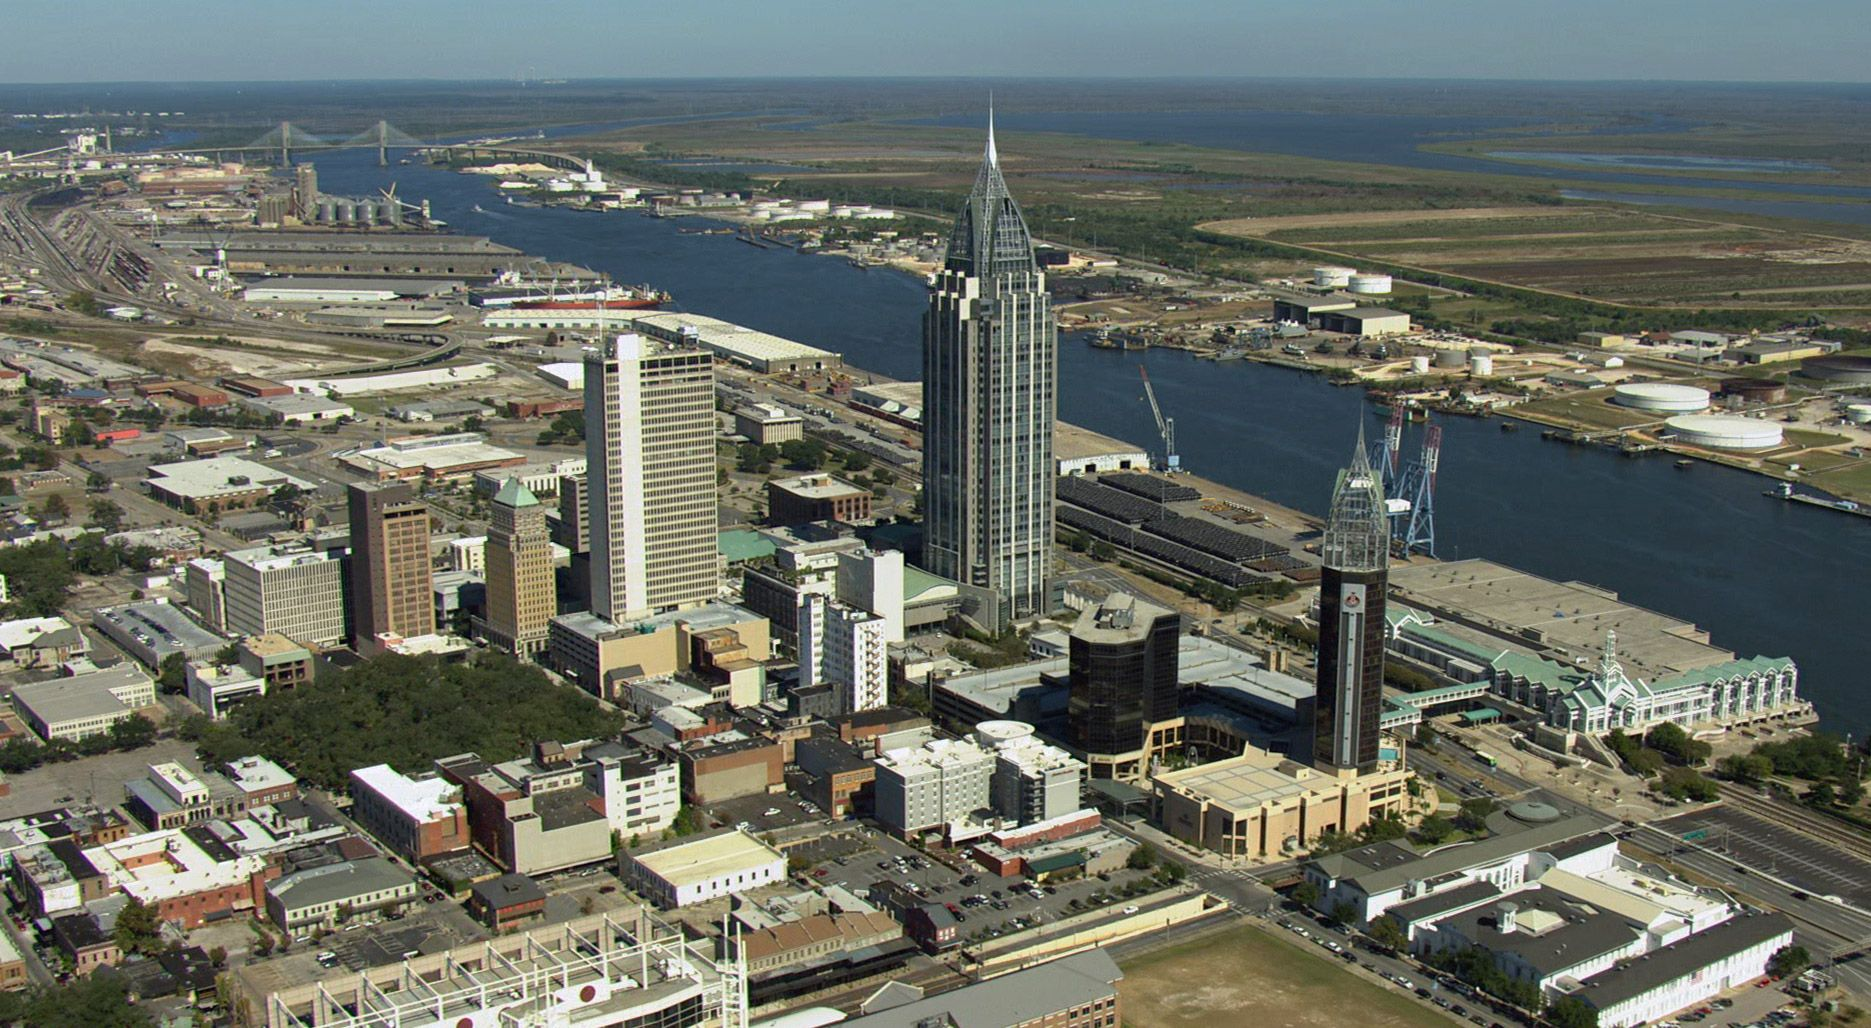 Mobile Alabama The Rsa Battle House Tower Is The Tallest